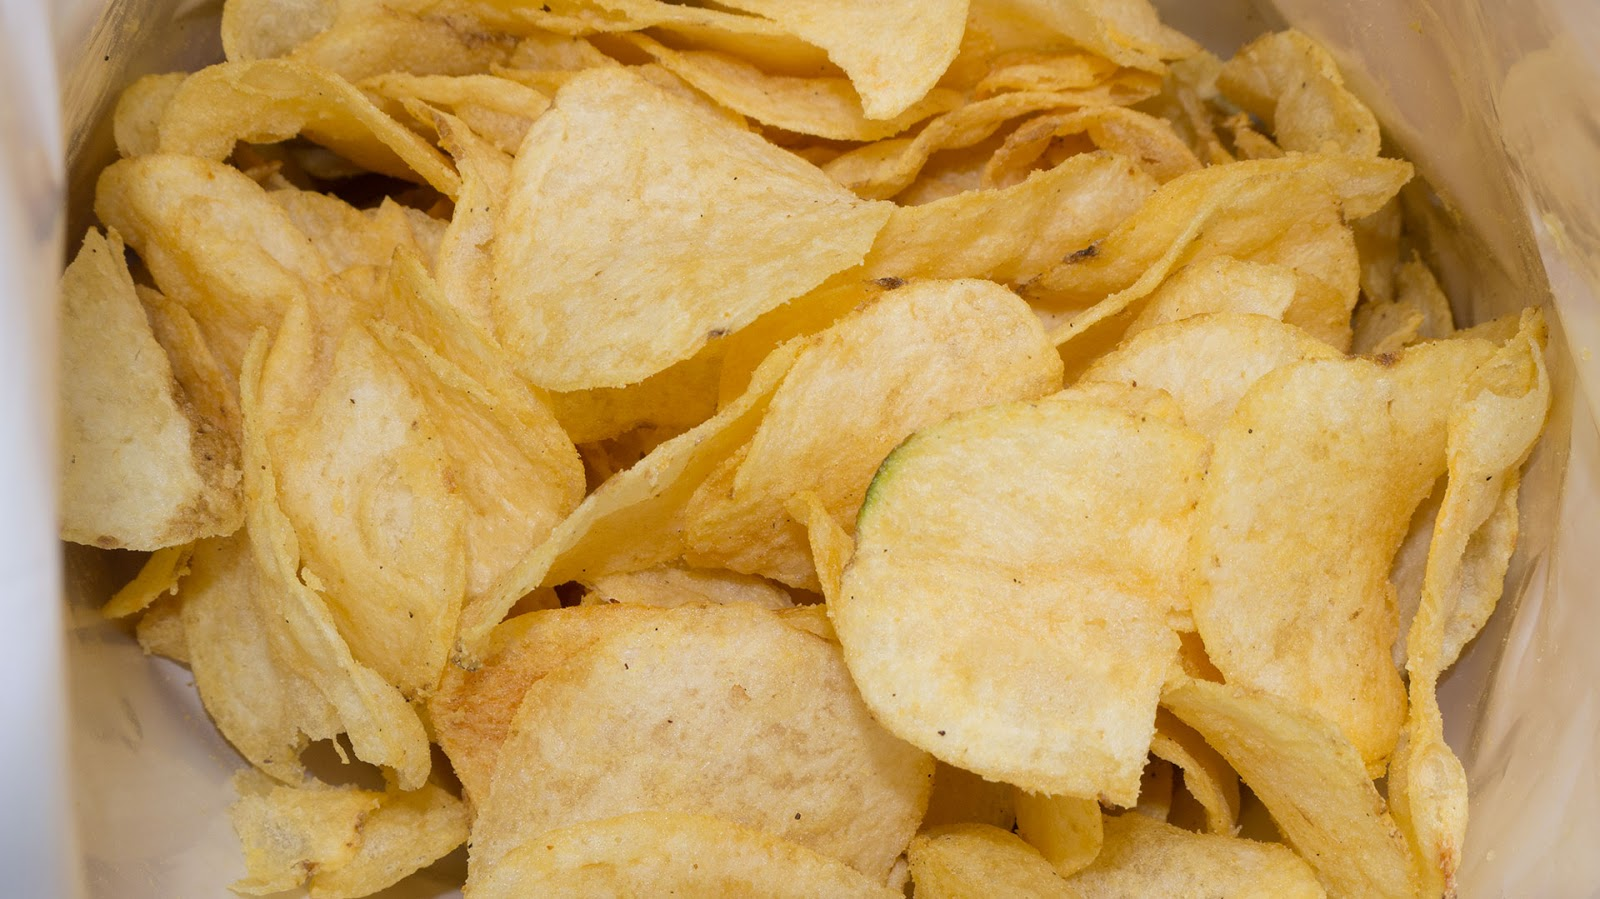 Changing Habits: No More Potato Chips